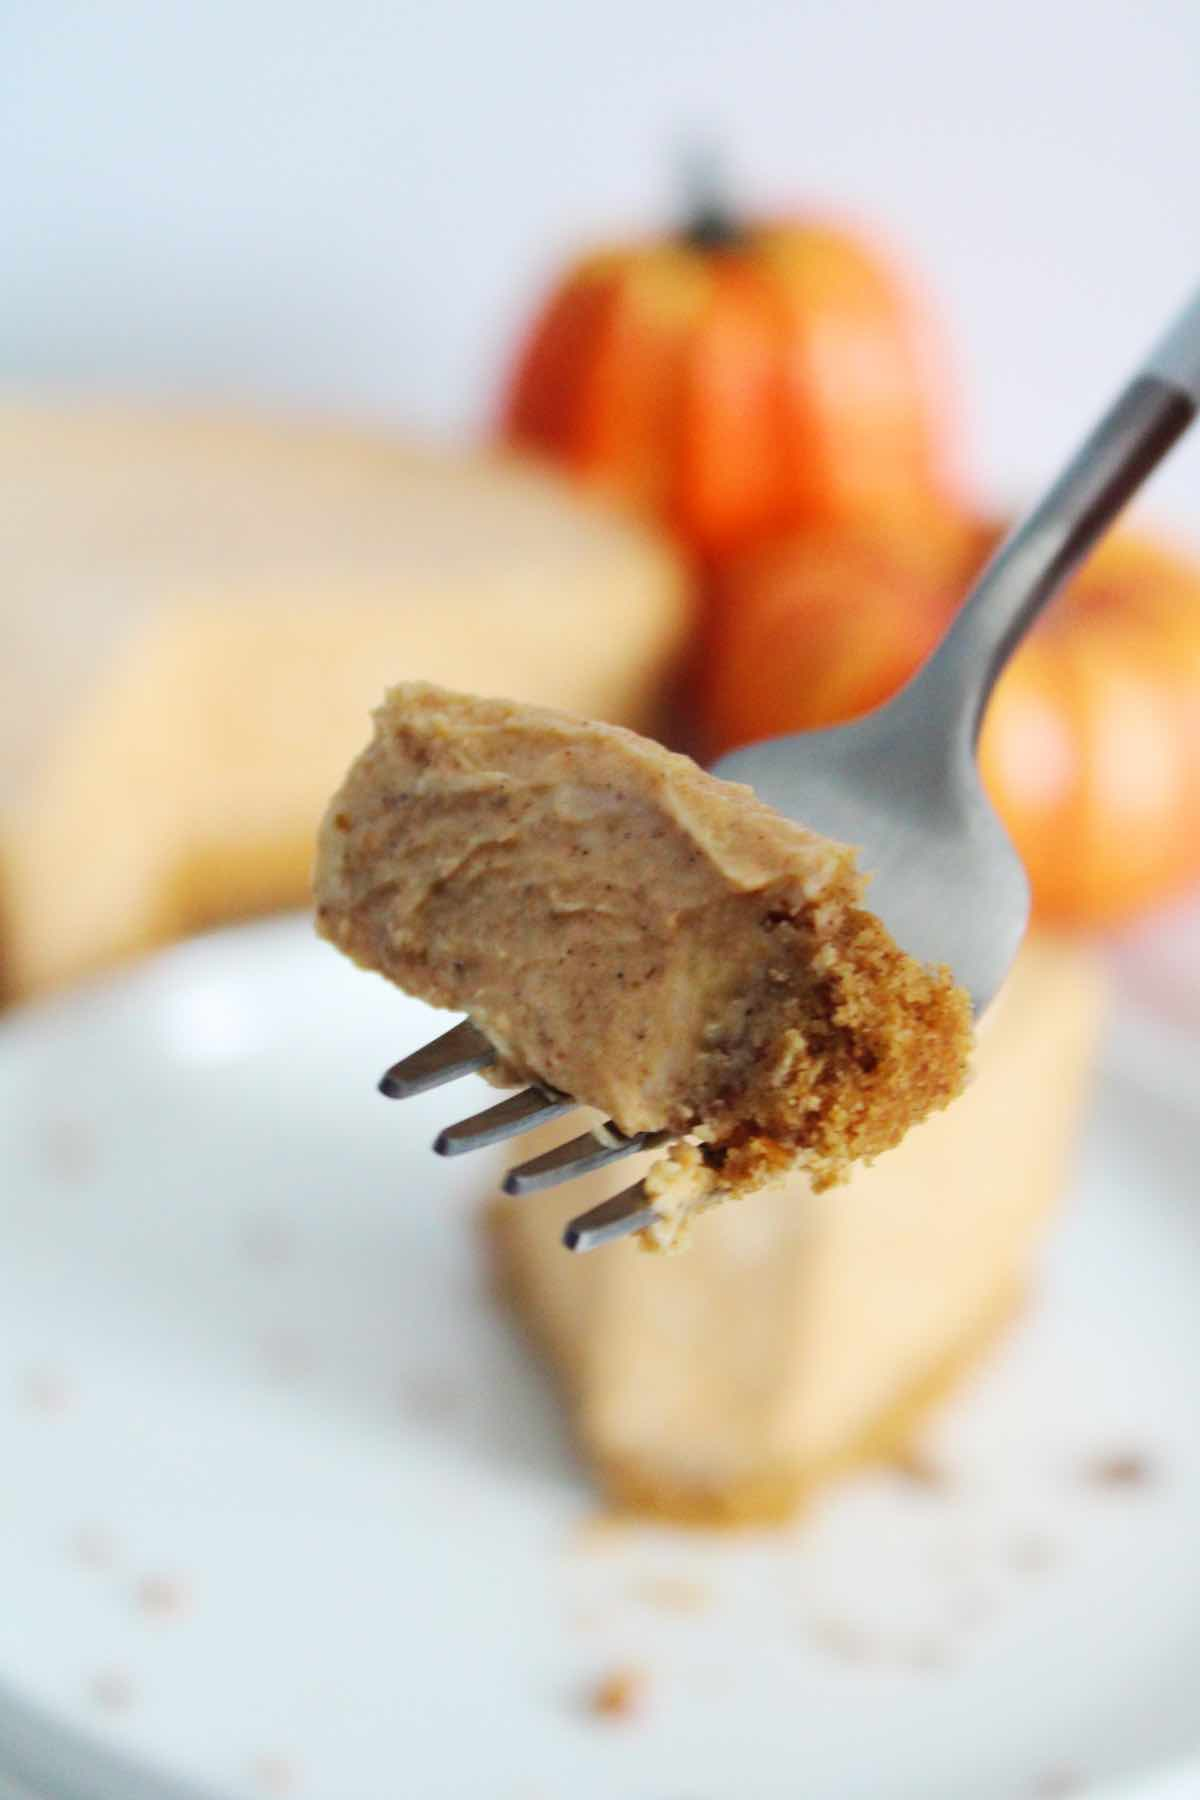 Serve this pumpkin spice cheesecake with whipped cream and chopped pecans.